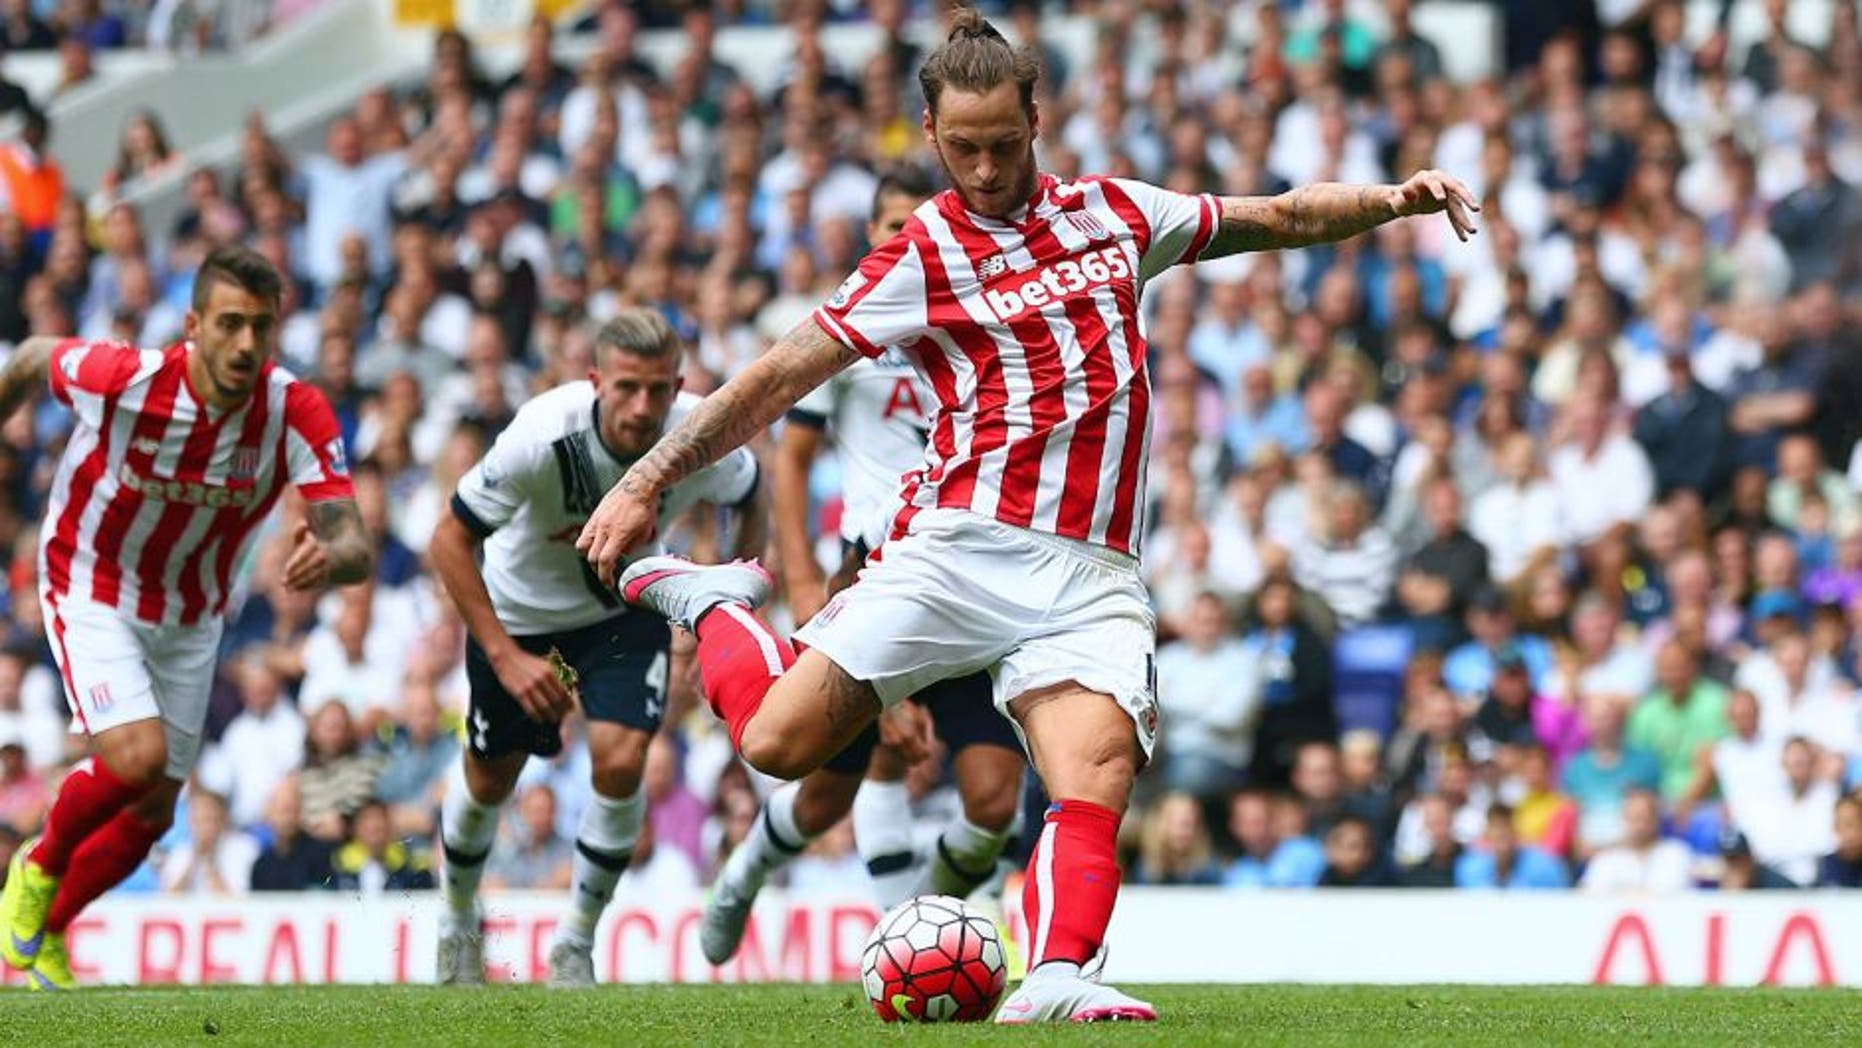 LONDON, ENGLAND - AUGUST 15: Marko Arnautovic of Stoke City scores his team's first goal from the penalty spot during the Barclays Premier League match between Tottenham Hotspur and Stoke City at White Hart Lane on August 15, 2015 in London, United Kingdom. (Photo by Dan Mullan/Getty Images)